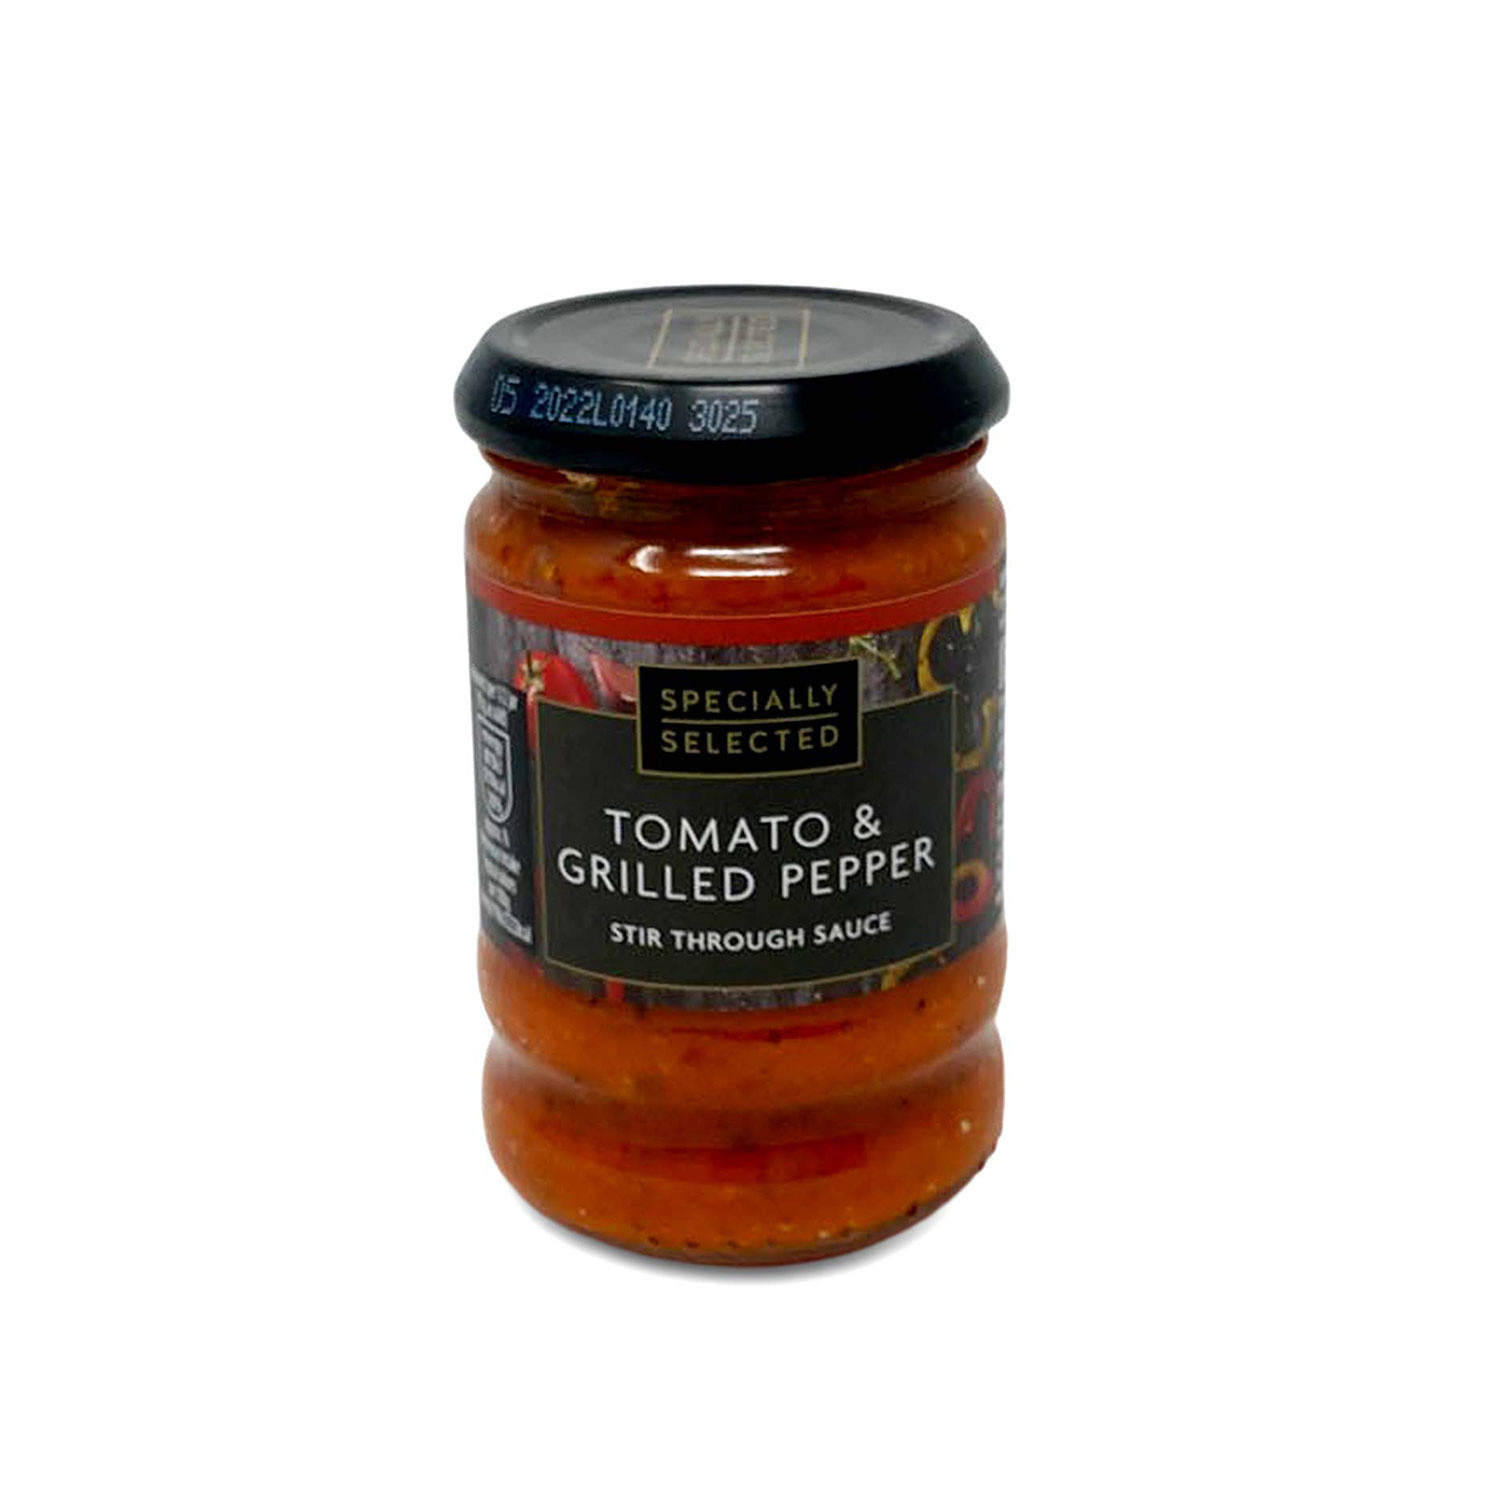 Tomato & Grilled Peppers